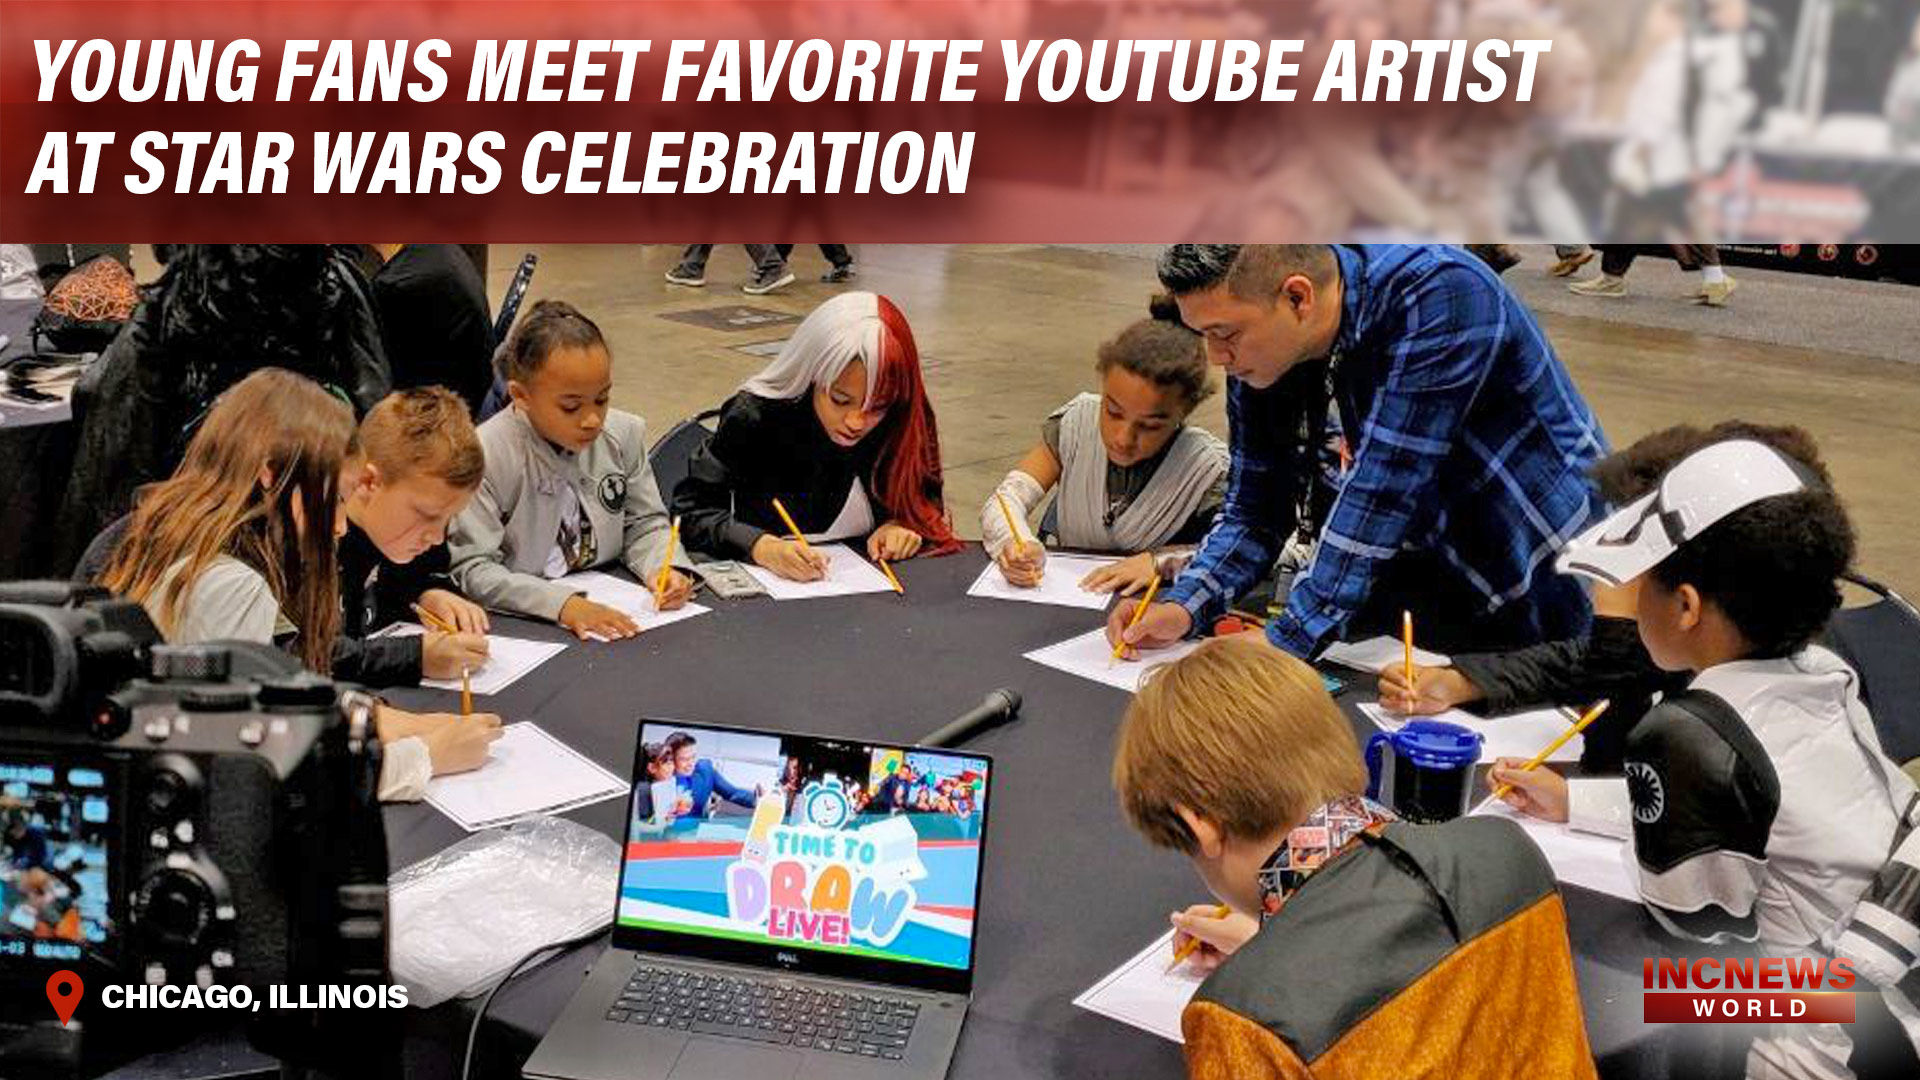 Young Fans Meet Favorite YouTube Artist at Star Wars Celebration